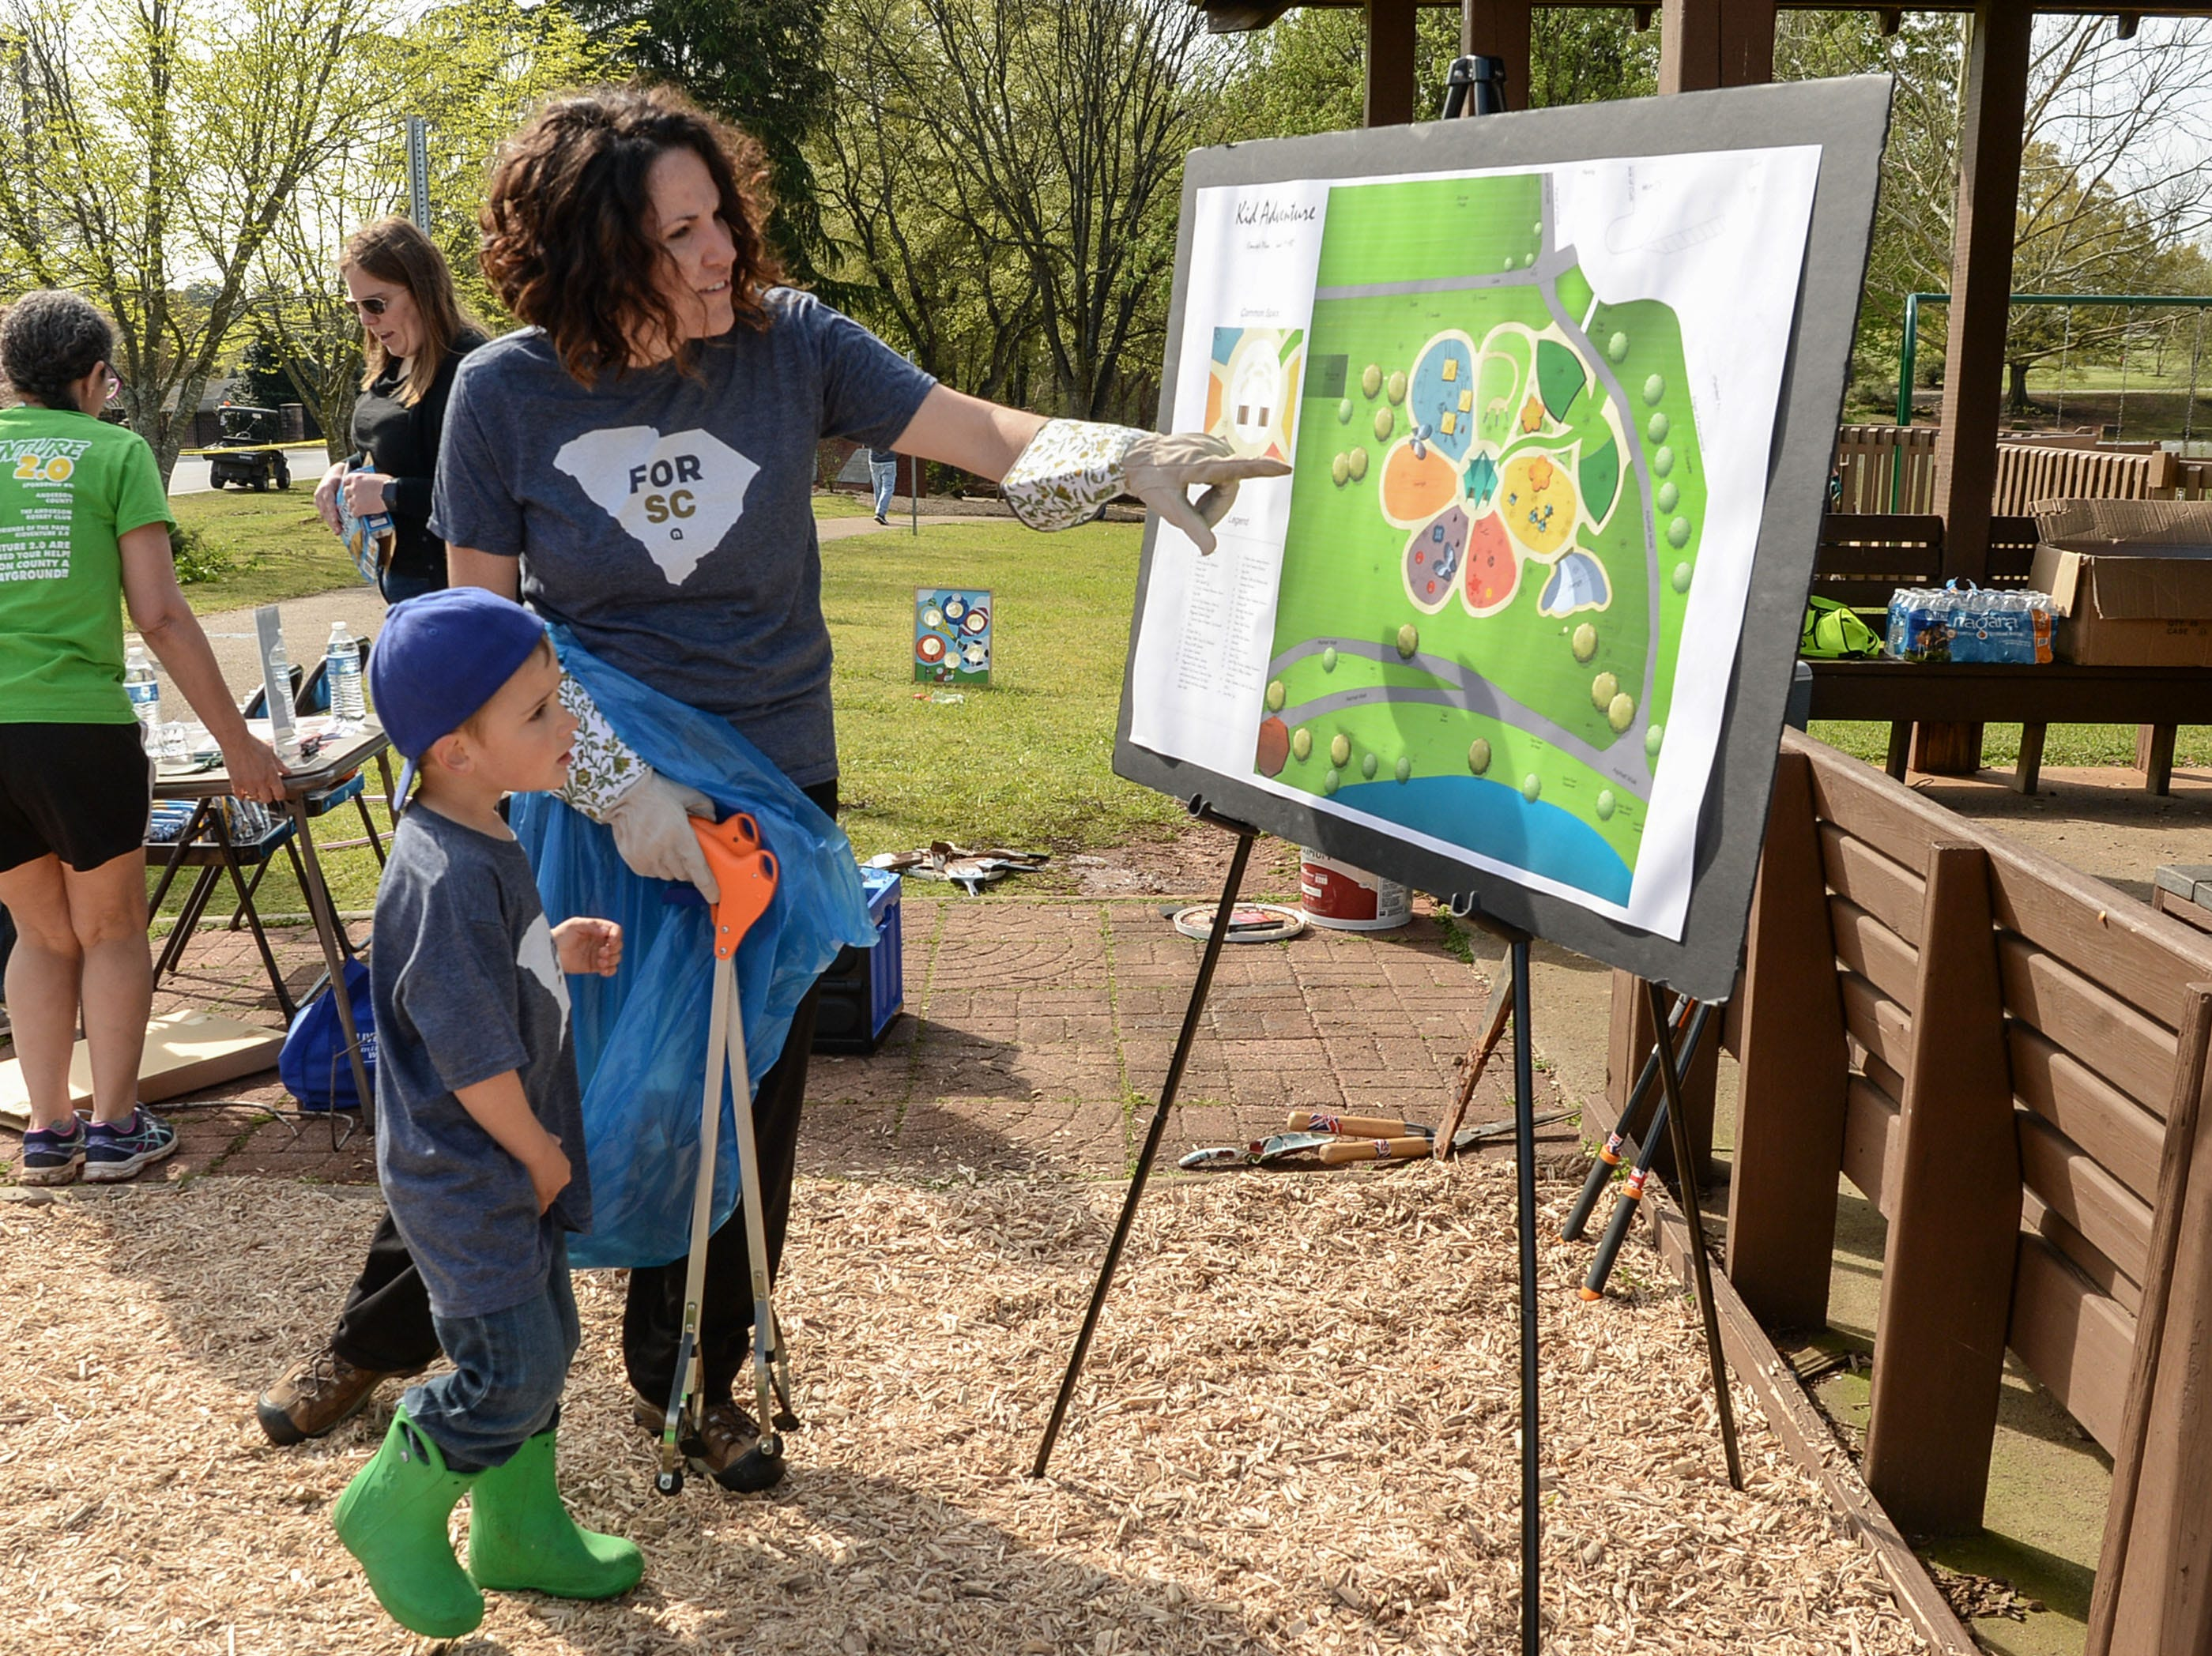 Charity Reed, and her son Jesse, 4, look at a proposed design for a new KidVenture park at the Anderson Sports and Entertainment Complex was on display during the annual spring cleanup day Saturday. A group of 310 volunteers, 250 from NewSpring Church, helped spread 100 cubic yards (70,000 pounds) of mulch, and brush 30 gallons of stain on the fences, pick up trash, and trim trees and shrubs at the park which opened 20 years ago in 1999.